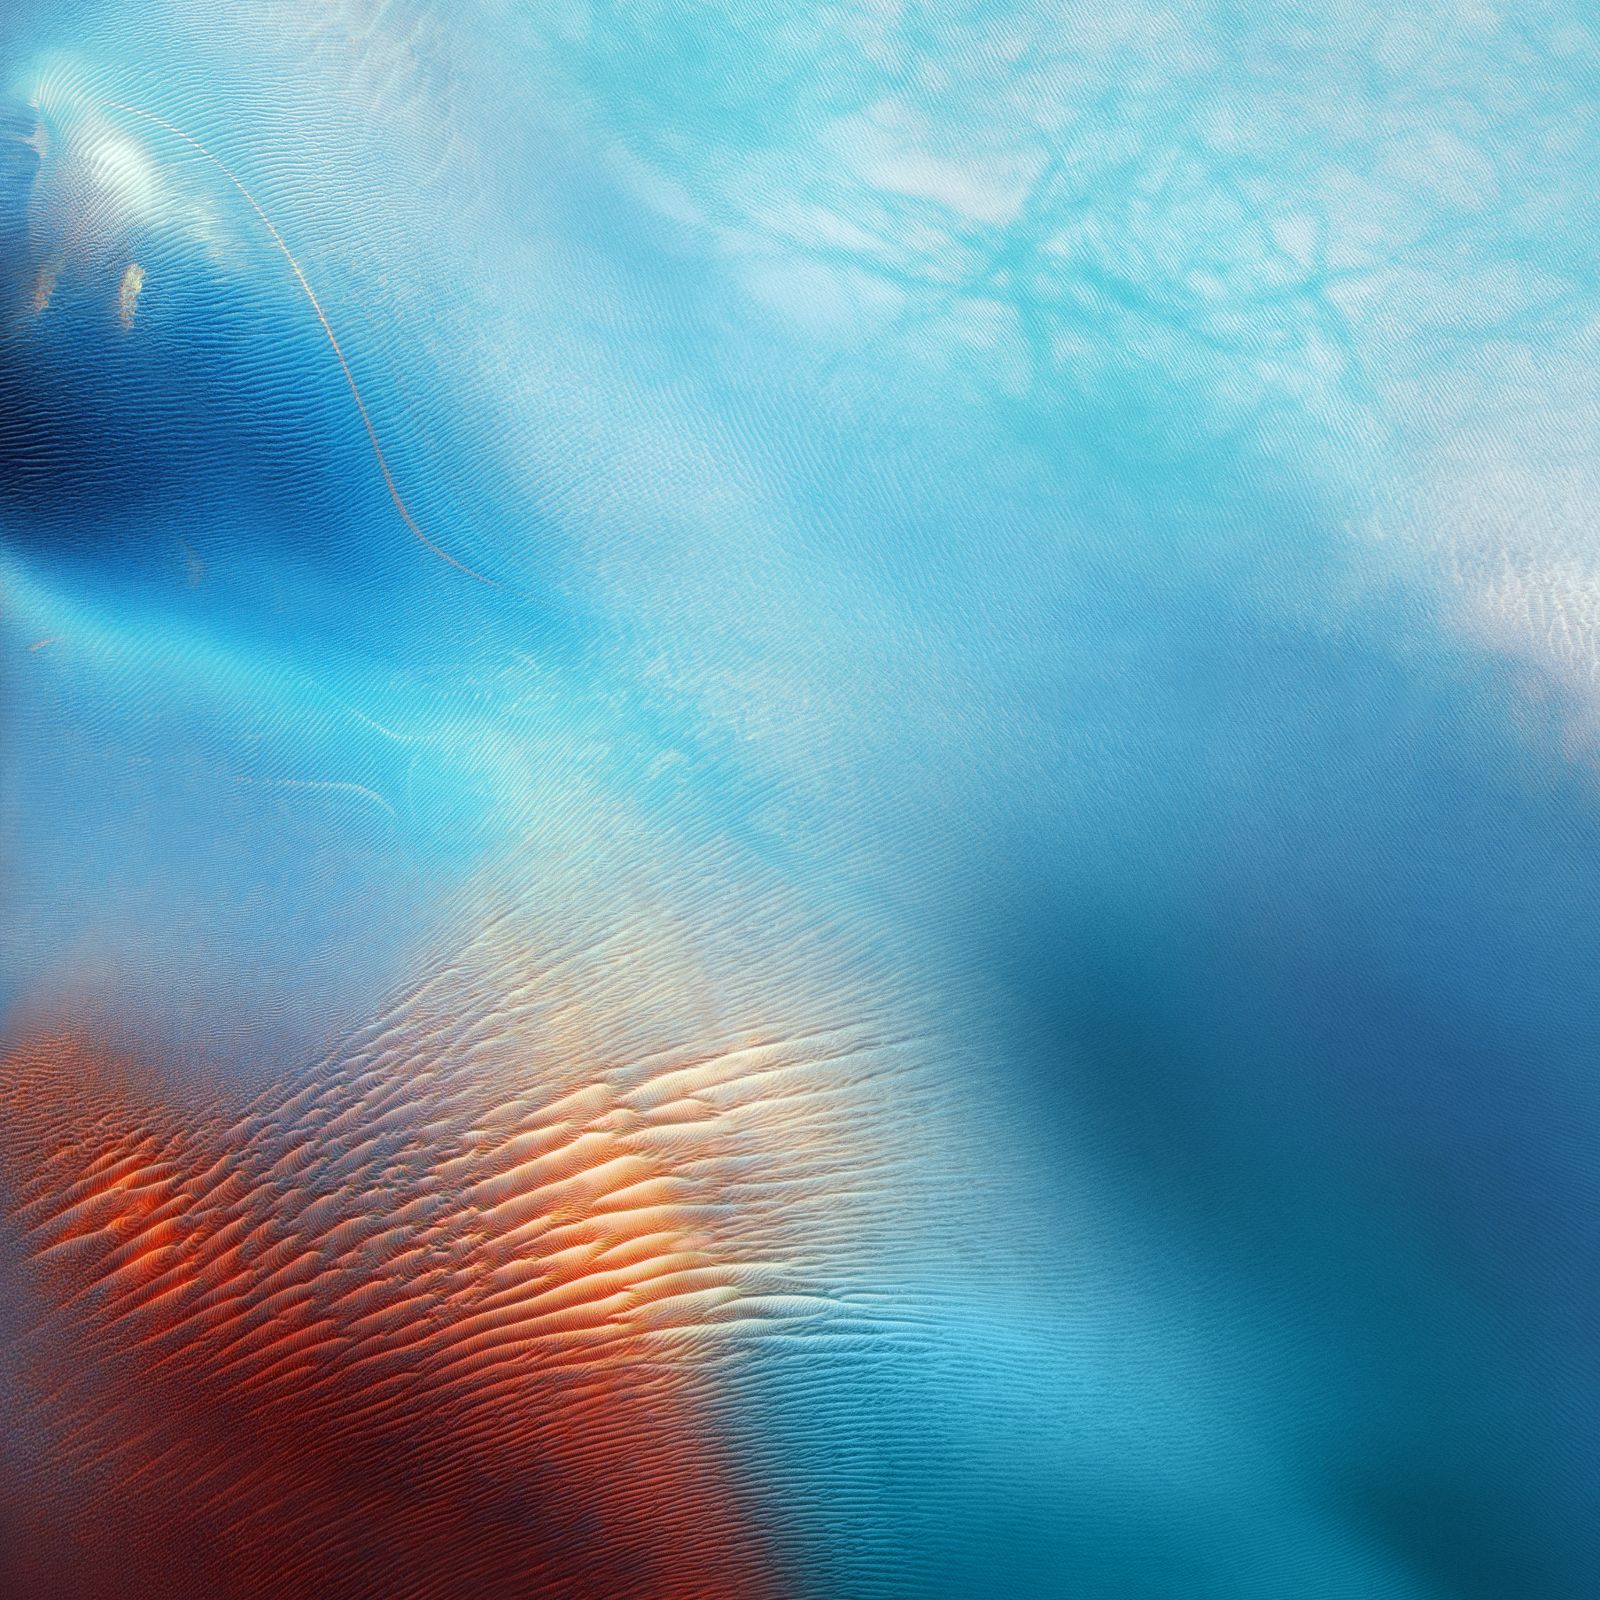 iOS 9 had a new resolution for the default wallpapers (on